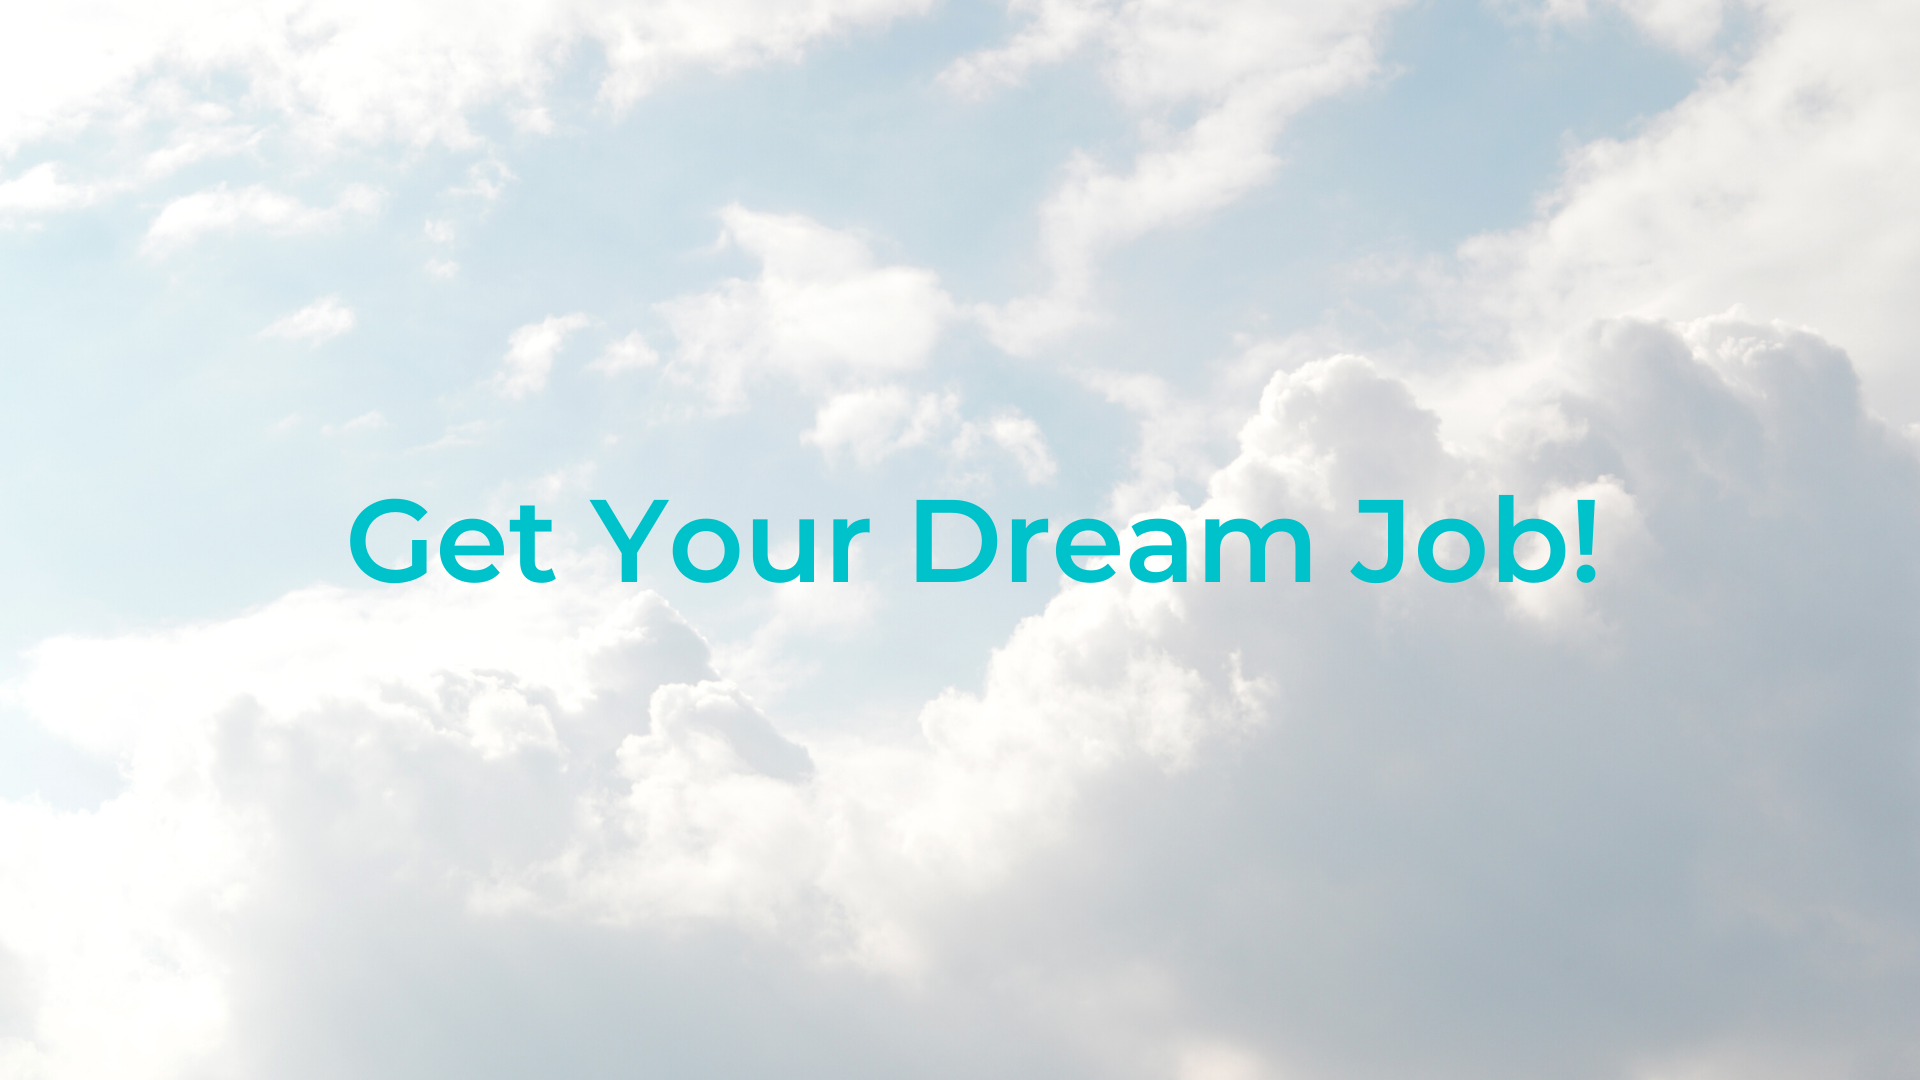 How To Get Your DREAM JOB (5 Pillars To Making Your Dream Job A Reality)